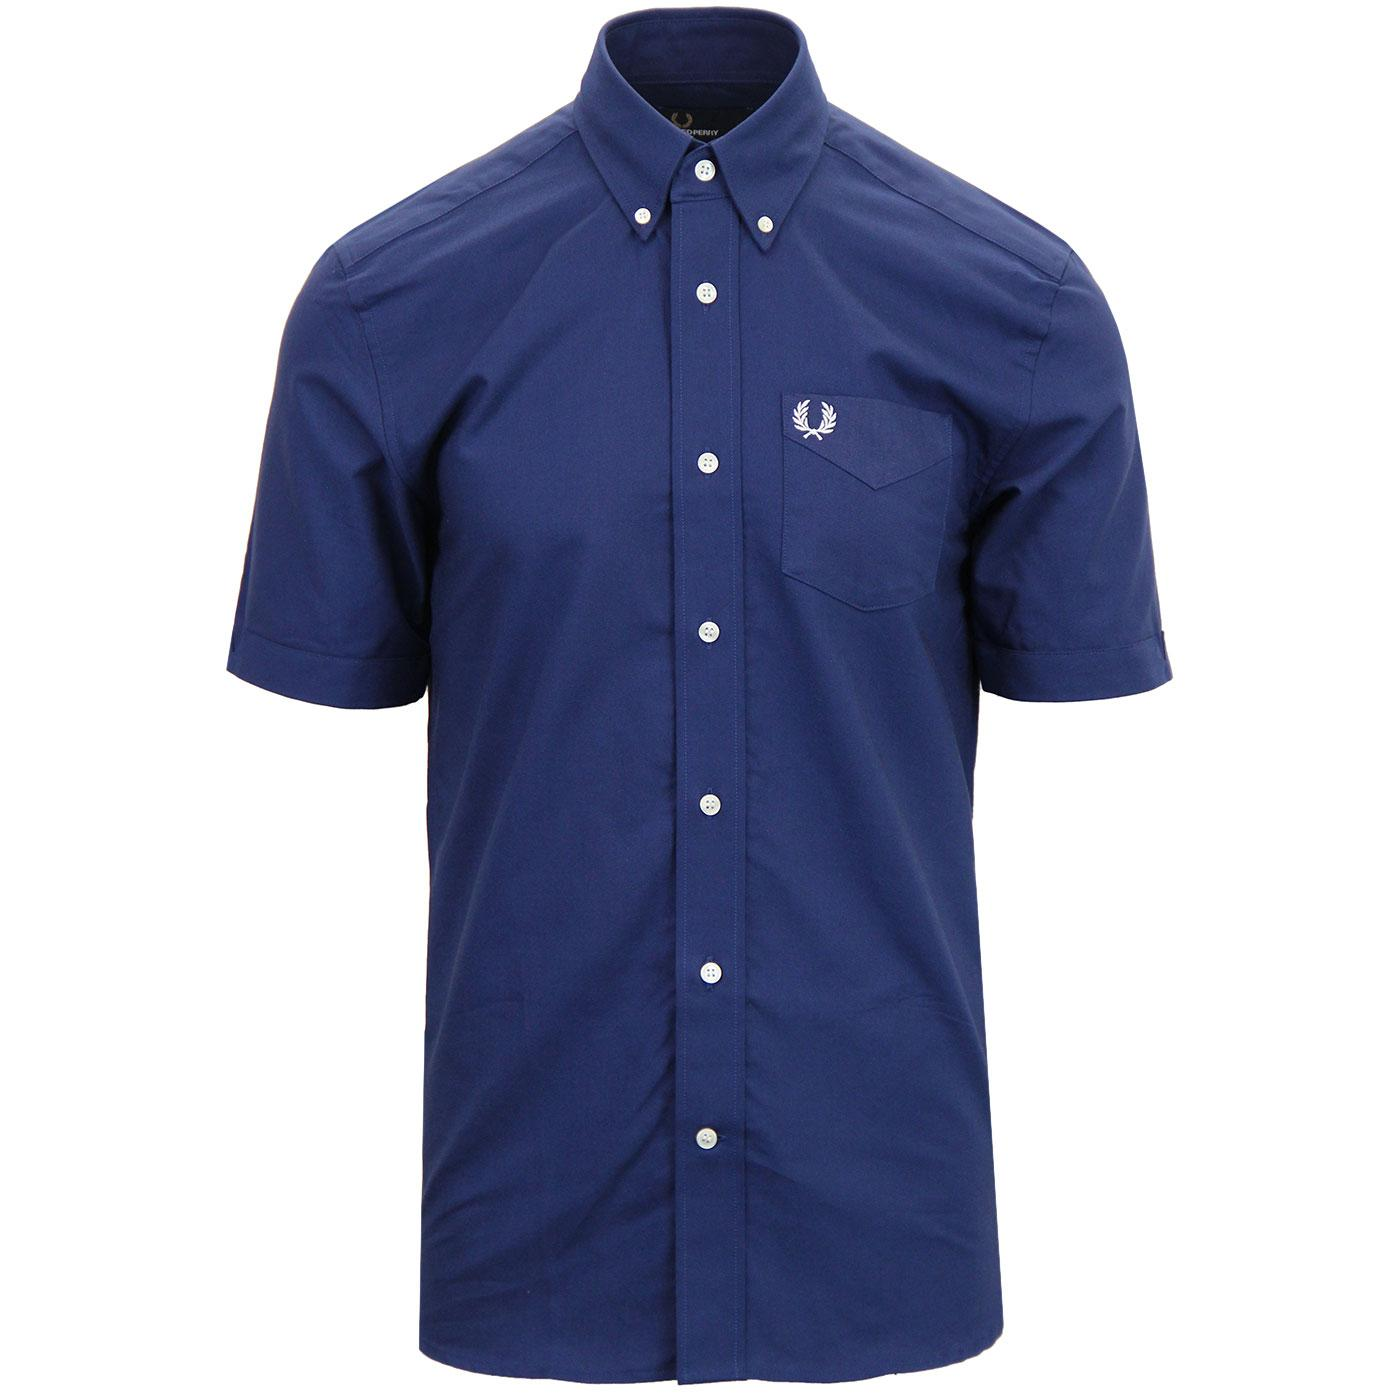 FRED PERRY Retro Mod Classic S/S Oxford Shirt FN